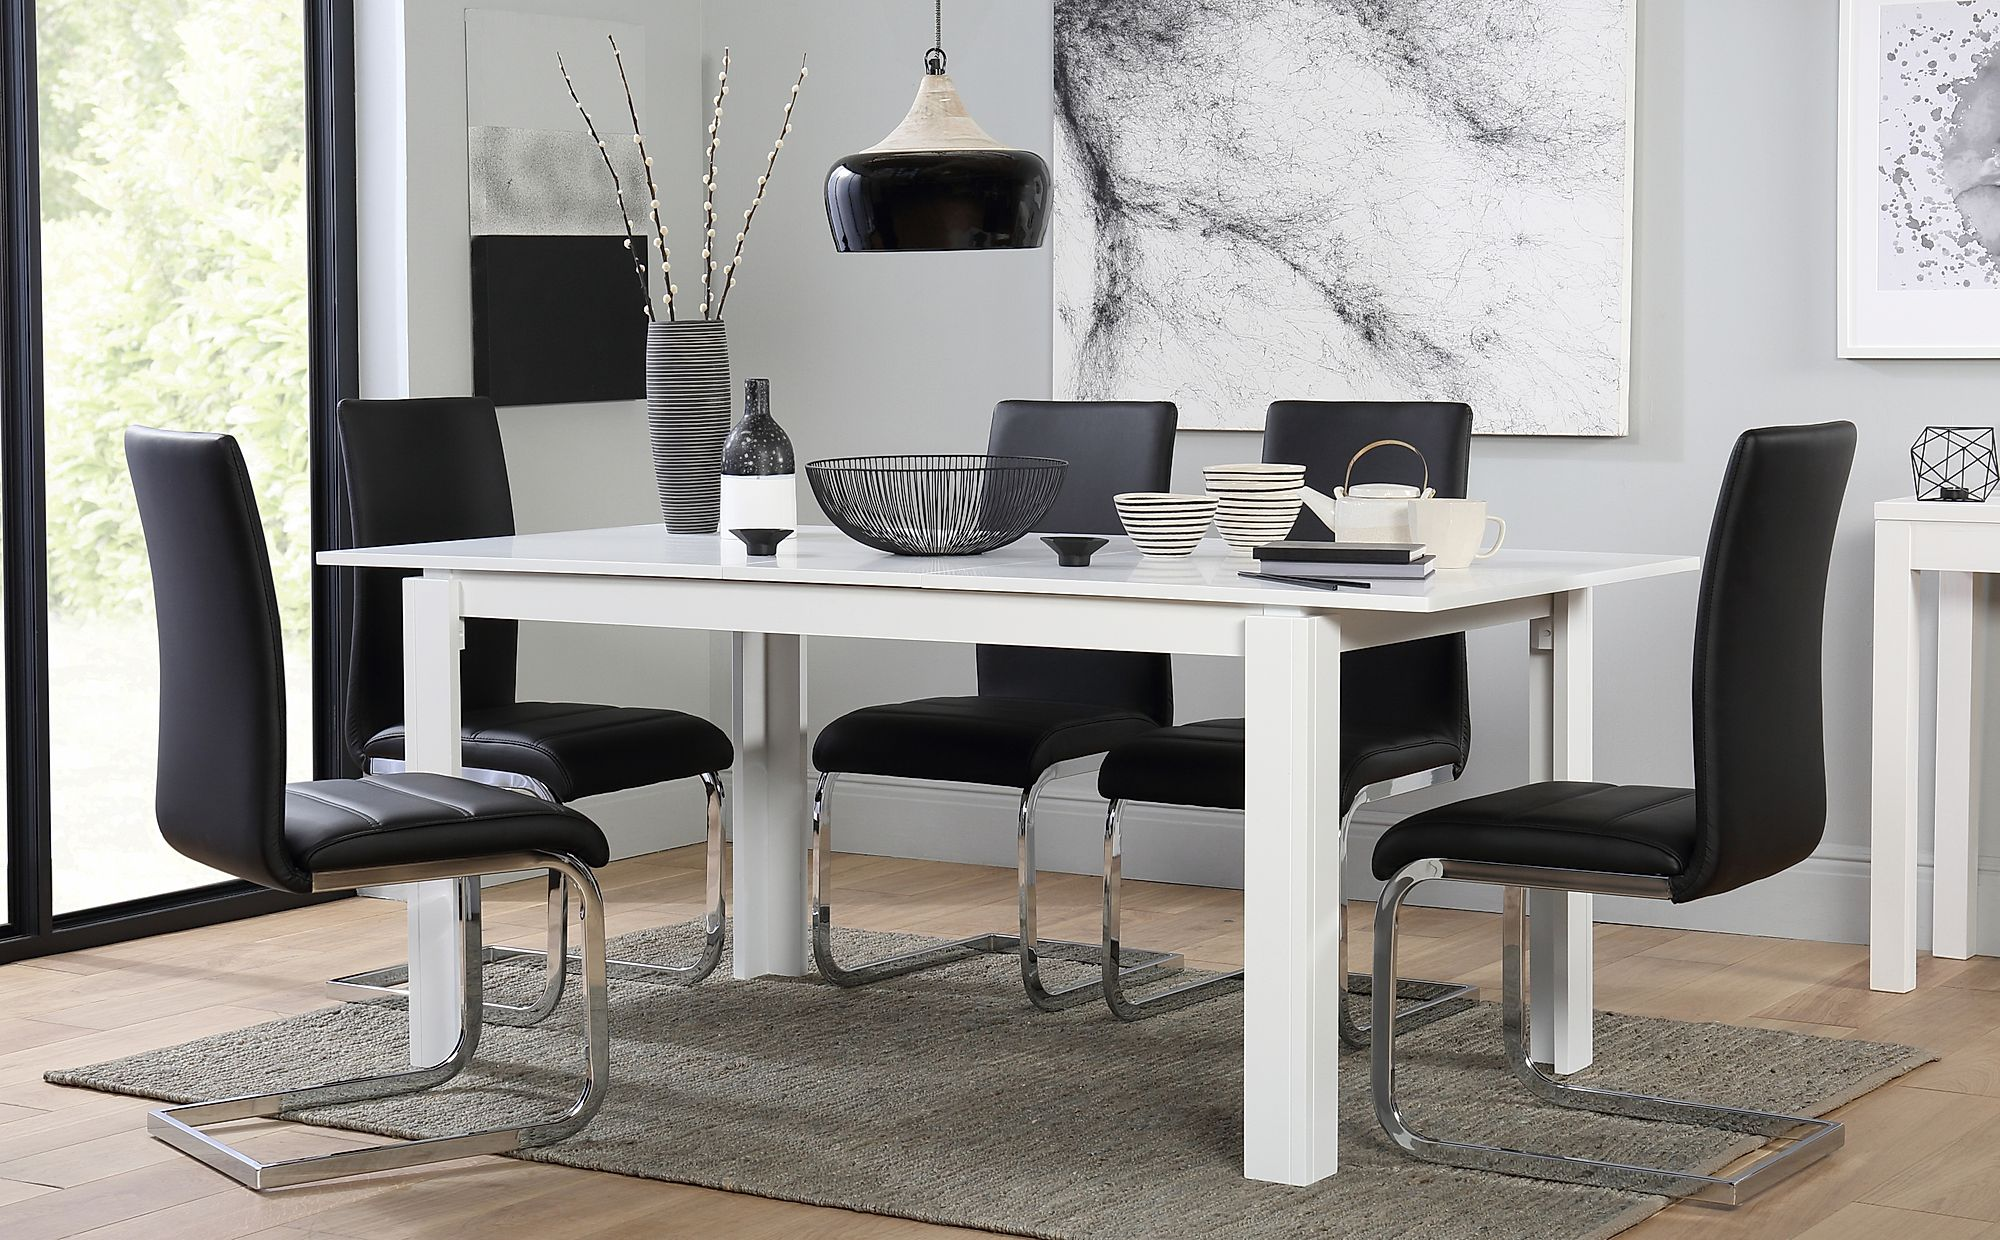 Excellent Aspen White Extending Dining Table With 4 Perth Black Leather Chairs Evergreenethics Interior Chair Design Evergreenethicsorg